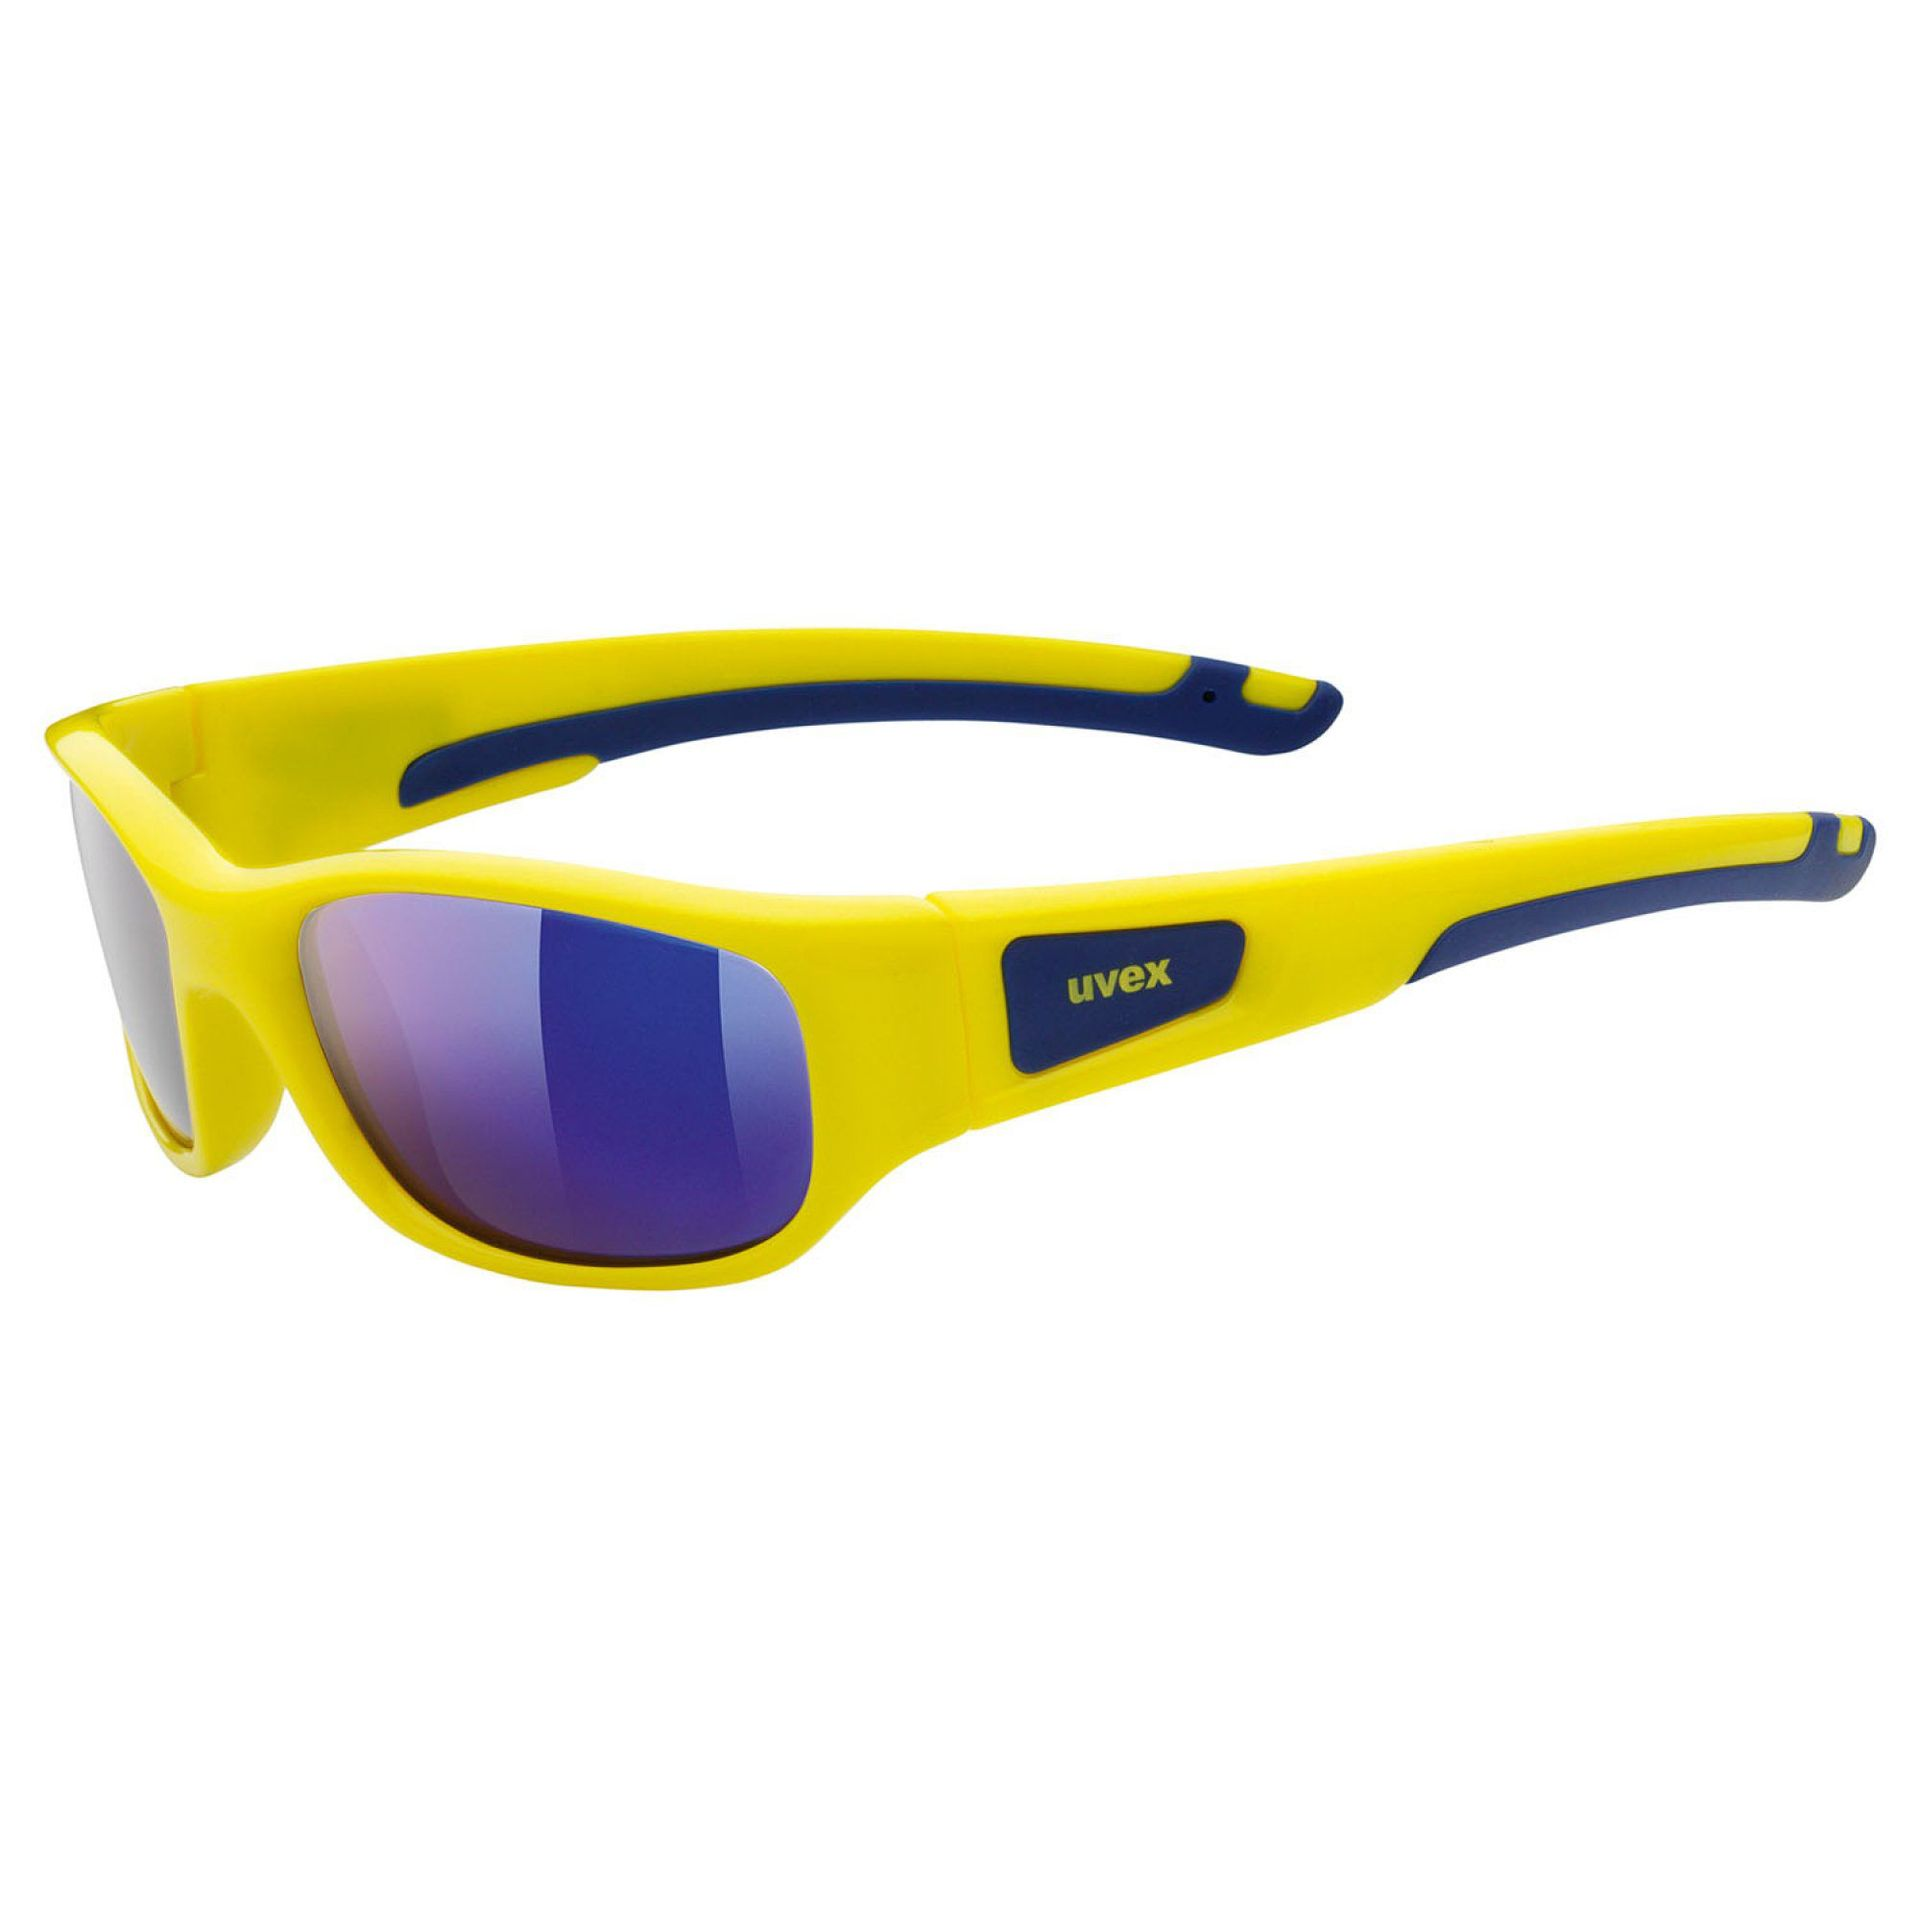 OKULARY UVEX SPORTSTYLE 506 YELLOW|MIRROR BLUE